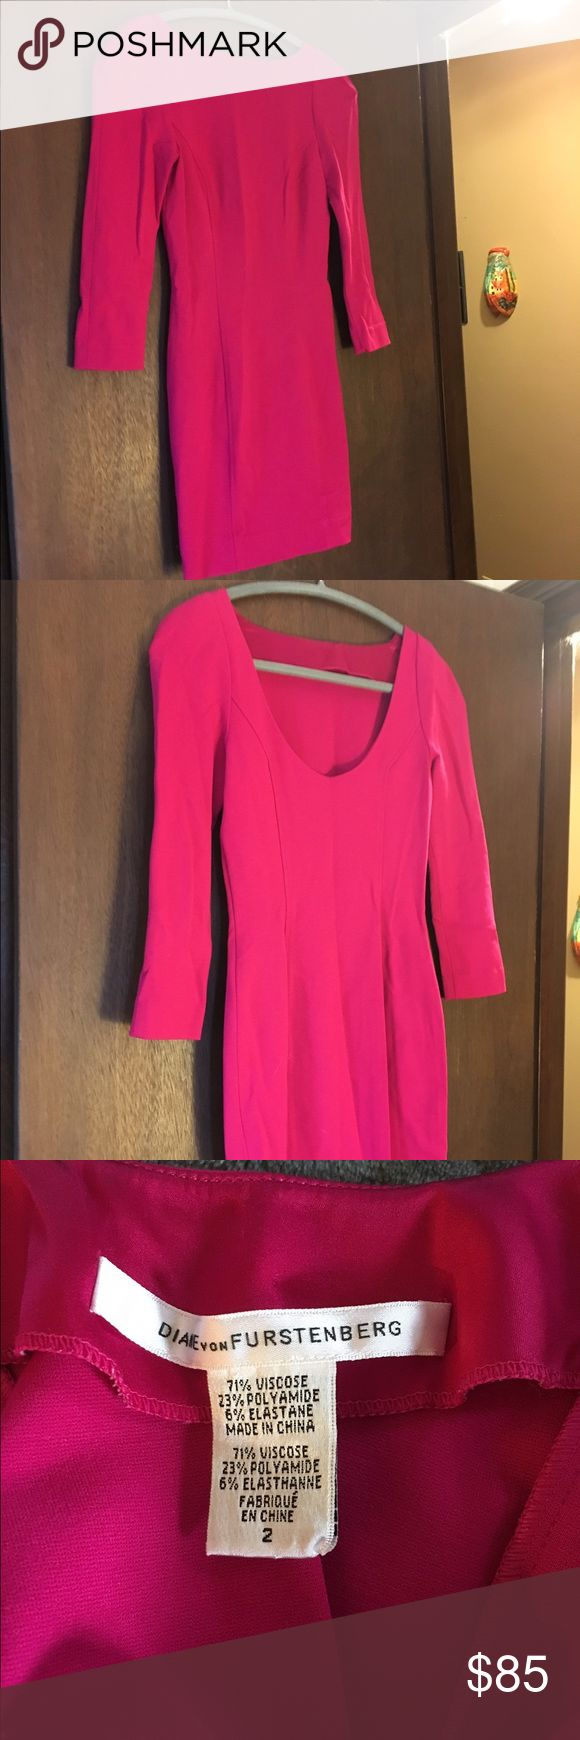 """DVF bodycon dress. Size 2 Only worn once or twice. Bright pink DVF dress. 3/4 sleeves, hits above knee. Stretchy. Shoulder to hem: 32.5"""", bust (front): 14"""". No trades. Reasonable offers only. Diane von Furstenberg Dresses"""